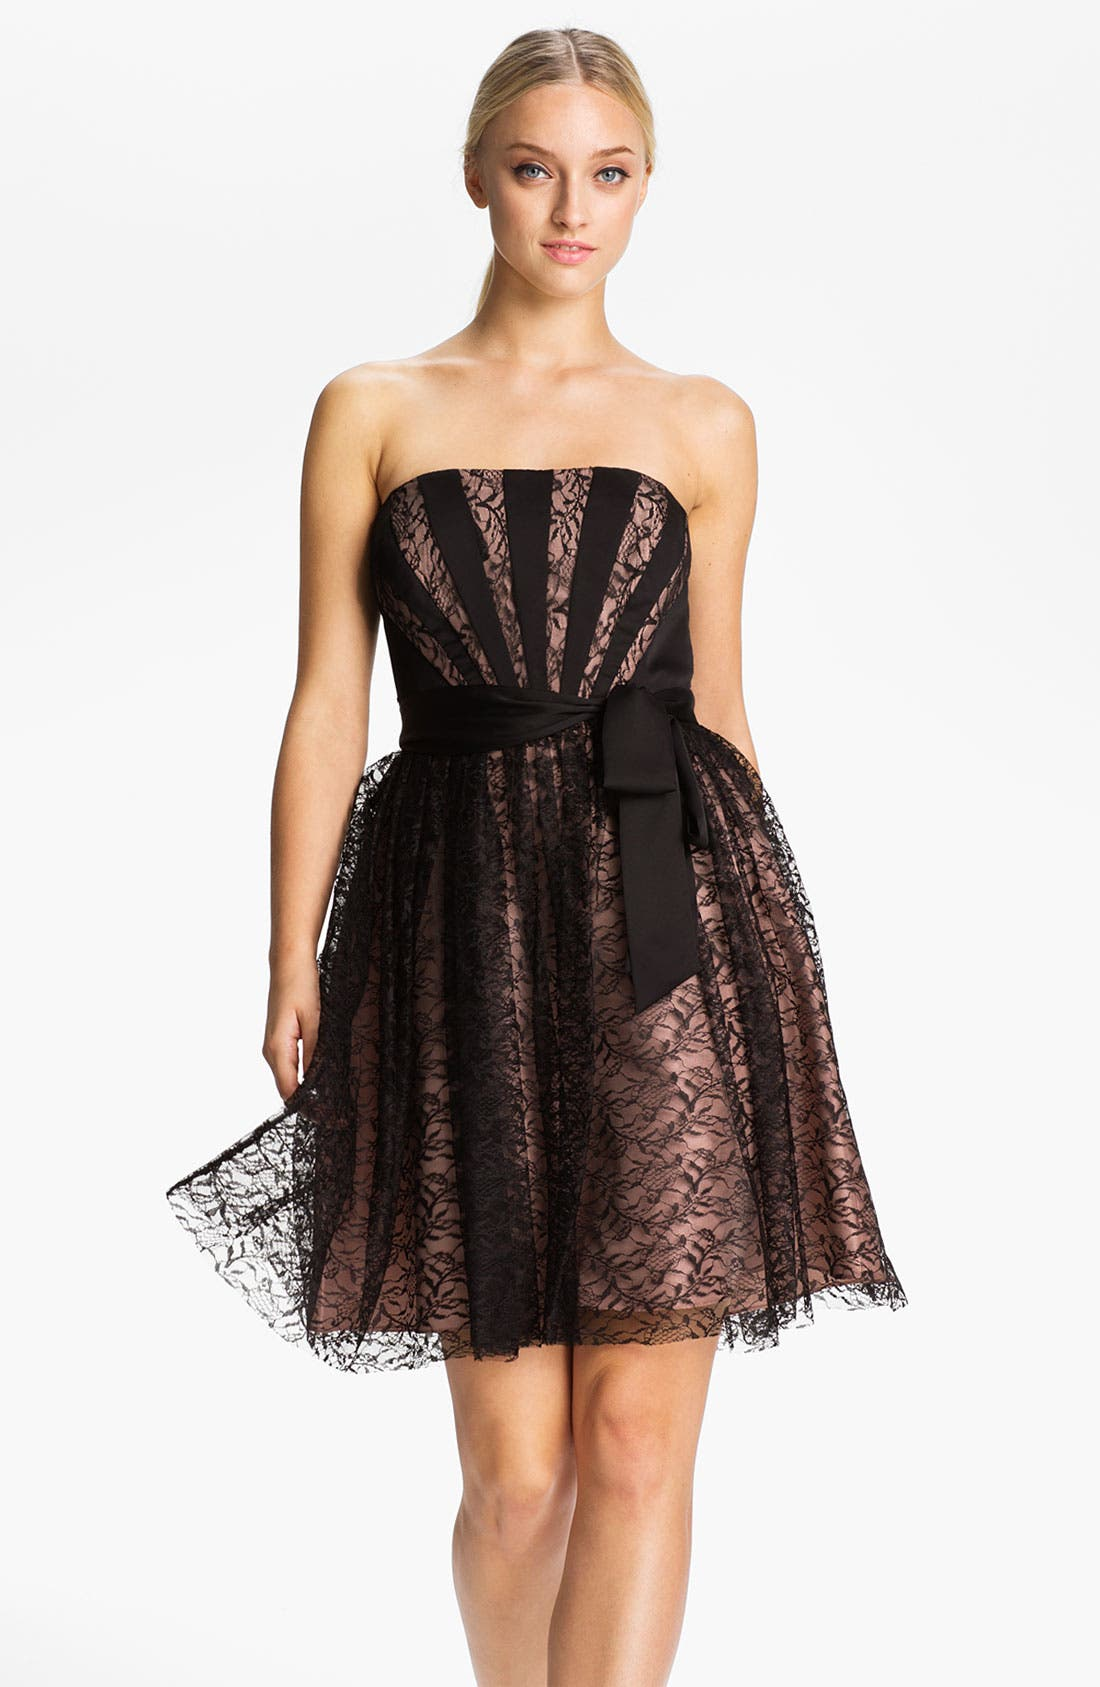 Main Image - Max & Cleo 'Rebecca' Strapless Satin & Lace Dress